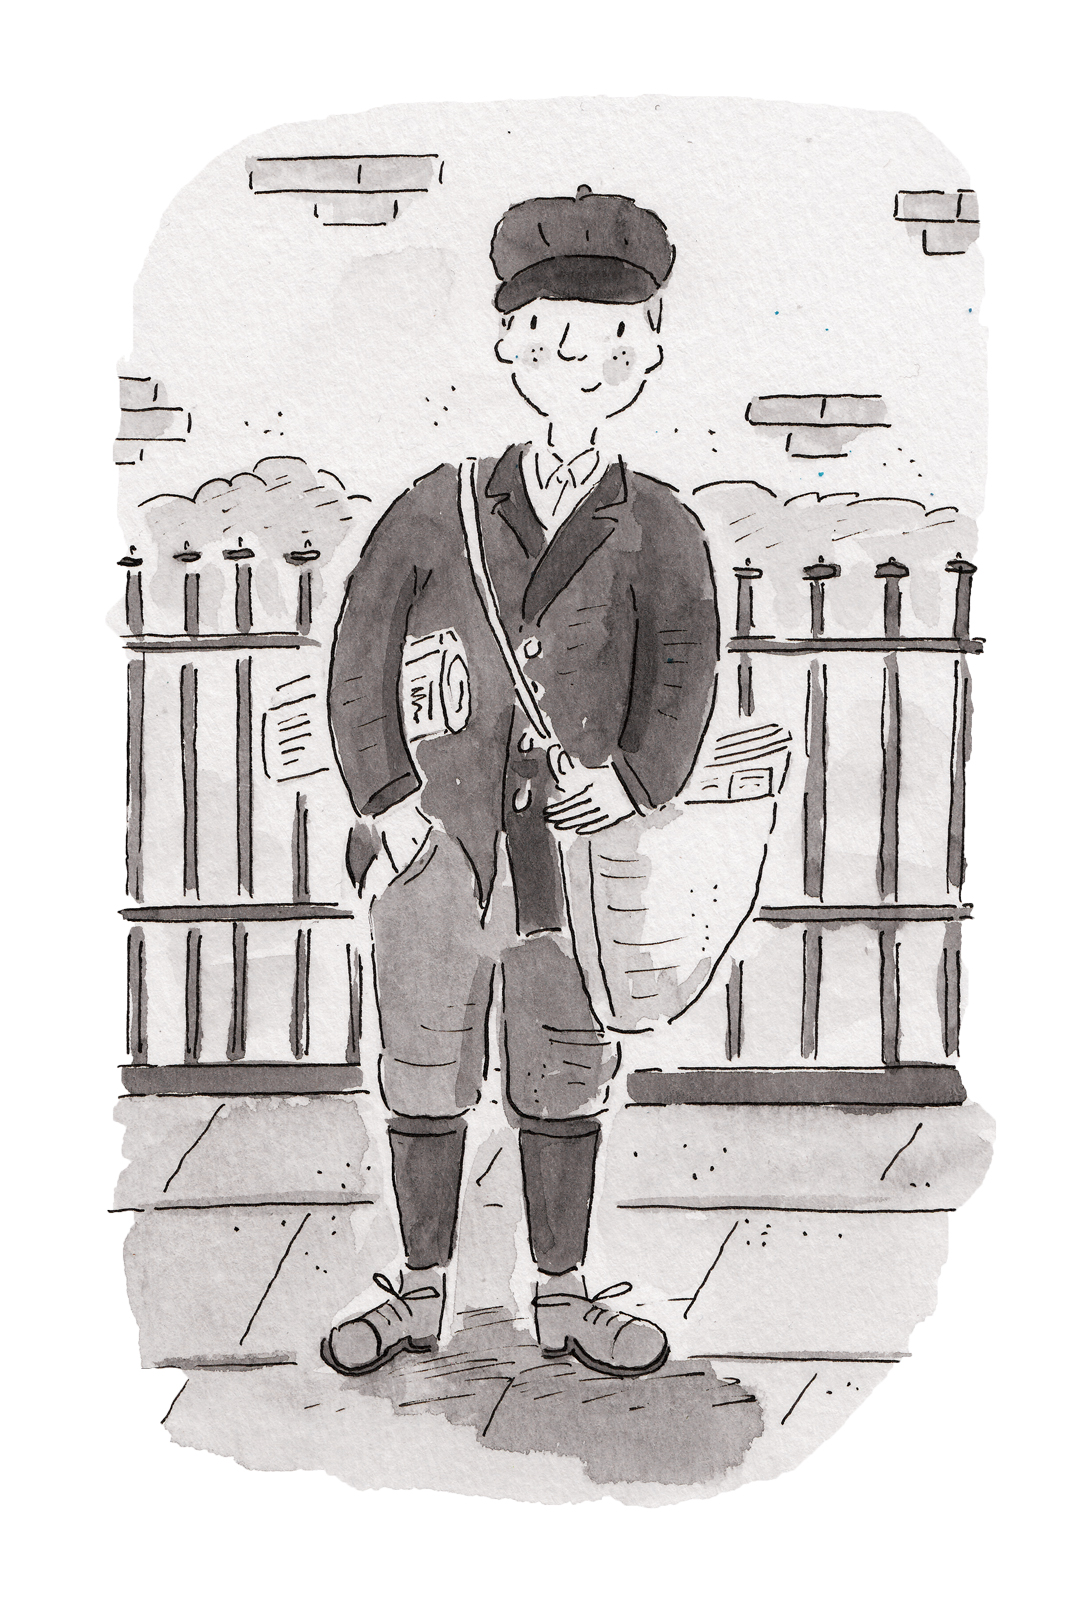 4.secret-diary-james-delivering-rolls-and-newspapers-2018